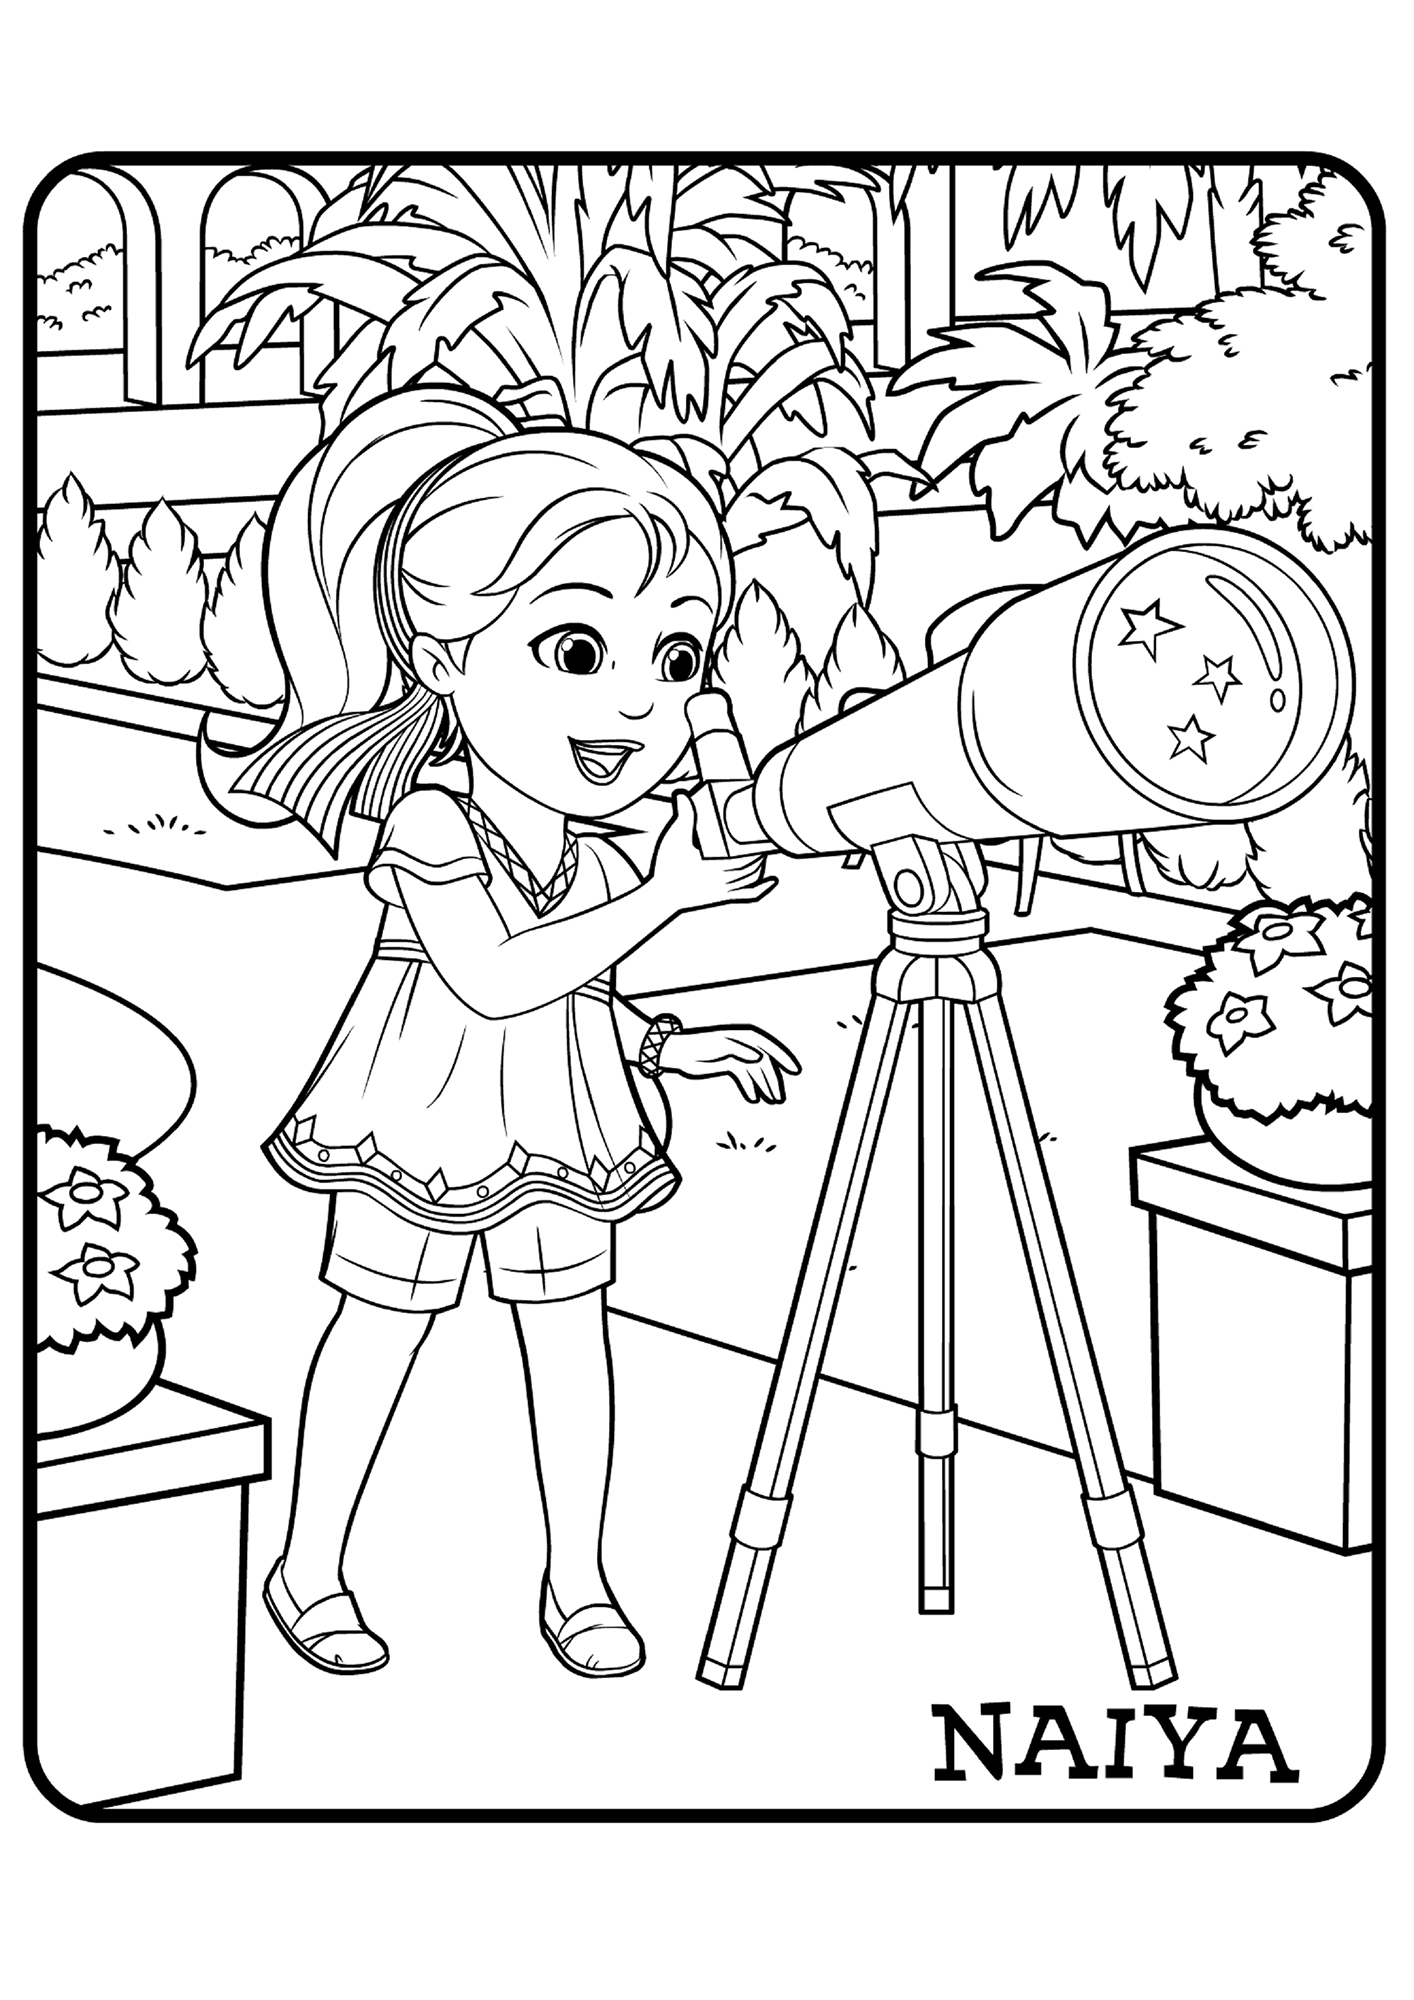 friendship coloring pages lego friends olivia coloring pages at getcoloringscom coloring friendship pages